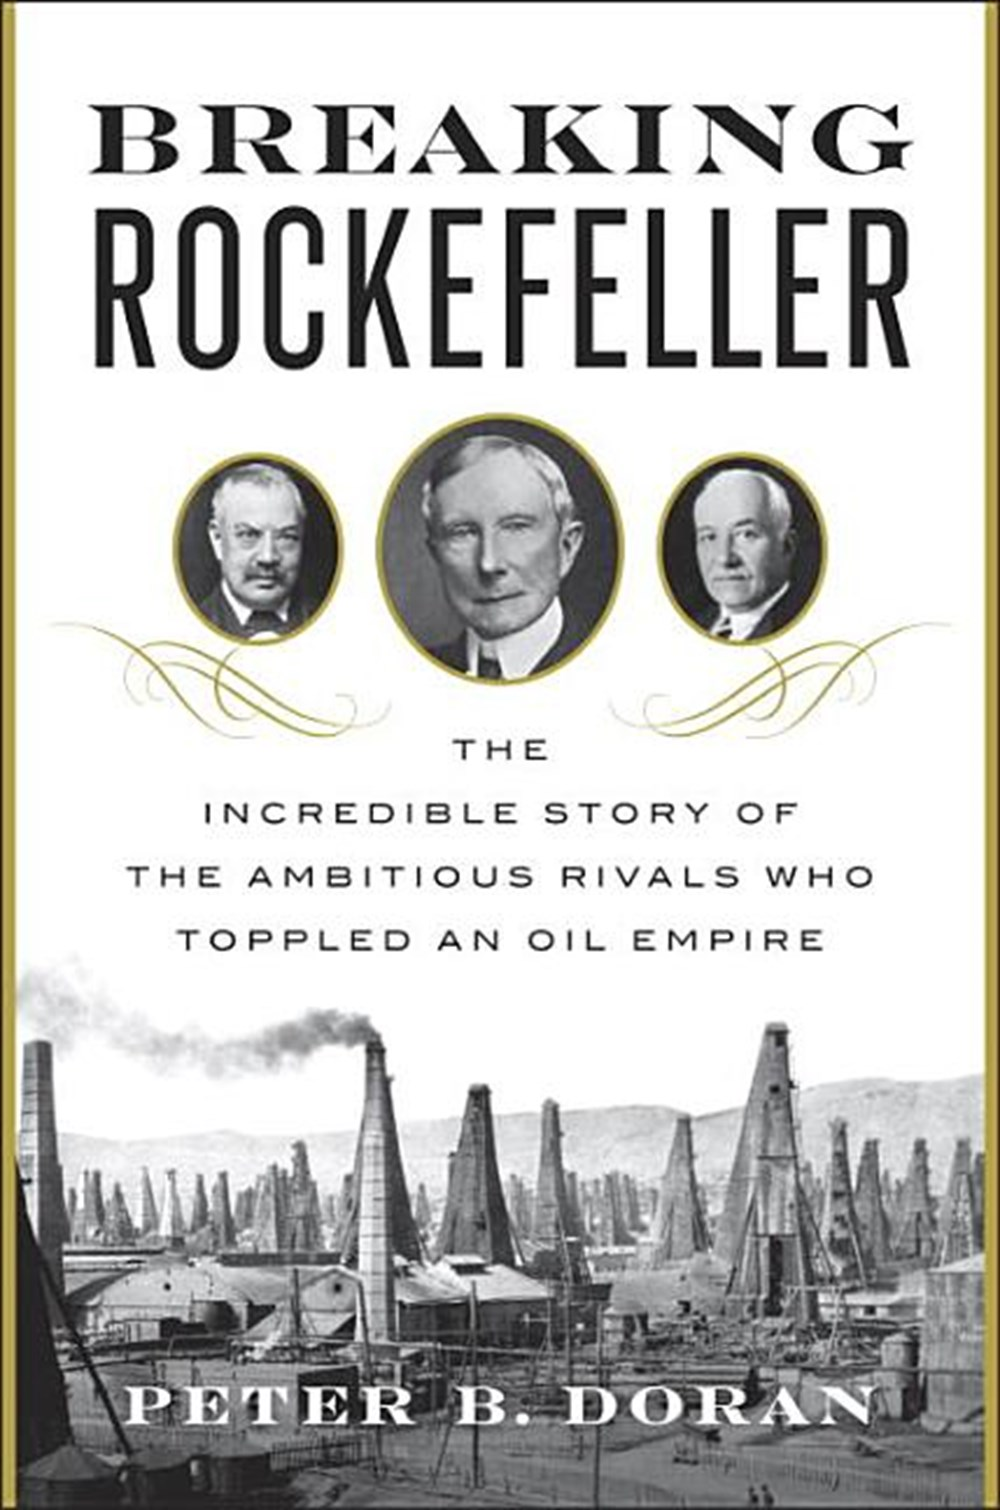 Breaking Rockefeller The Incredible Story of the Ambitious Rivals Who Toppled an Oil Empire